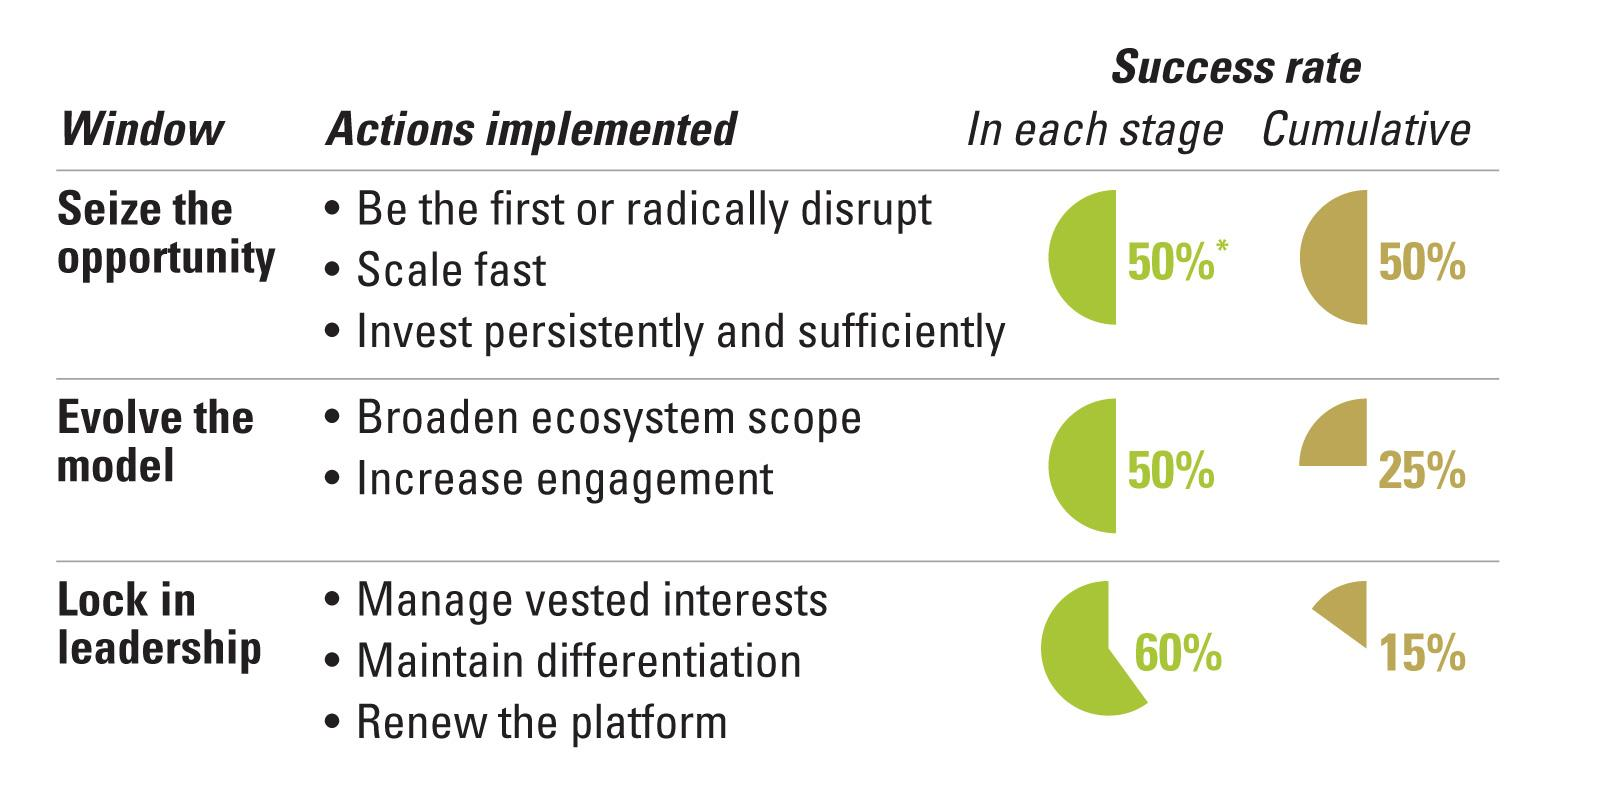 Critical Windows in the Ecosystem Life Cycle Require Specific Leadership Actions